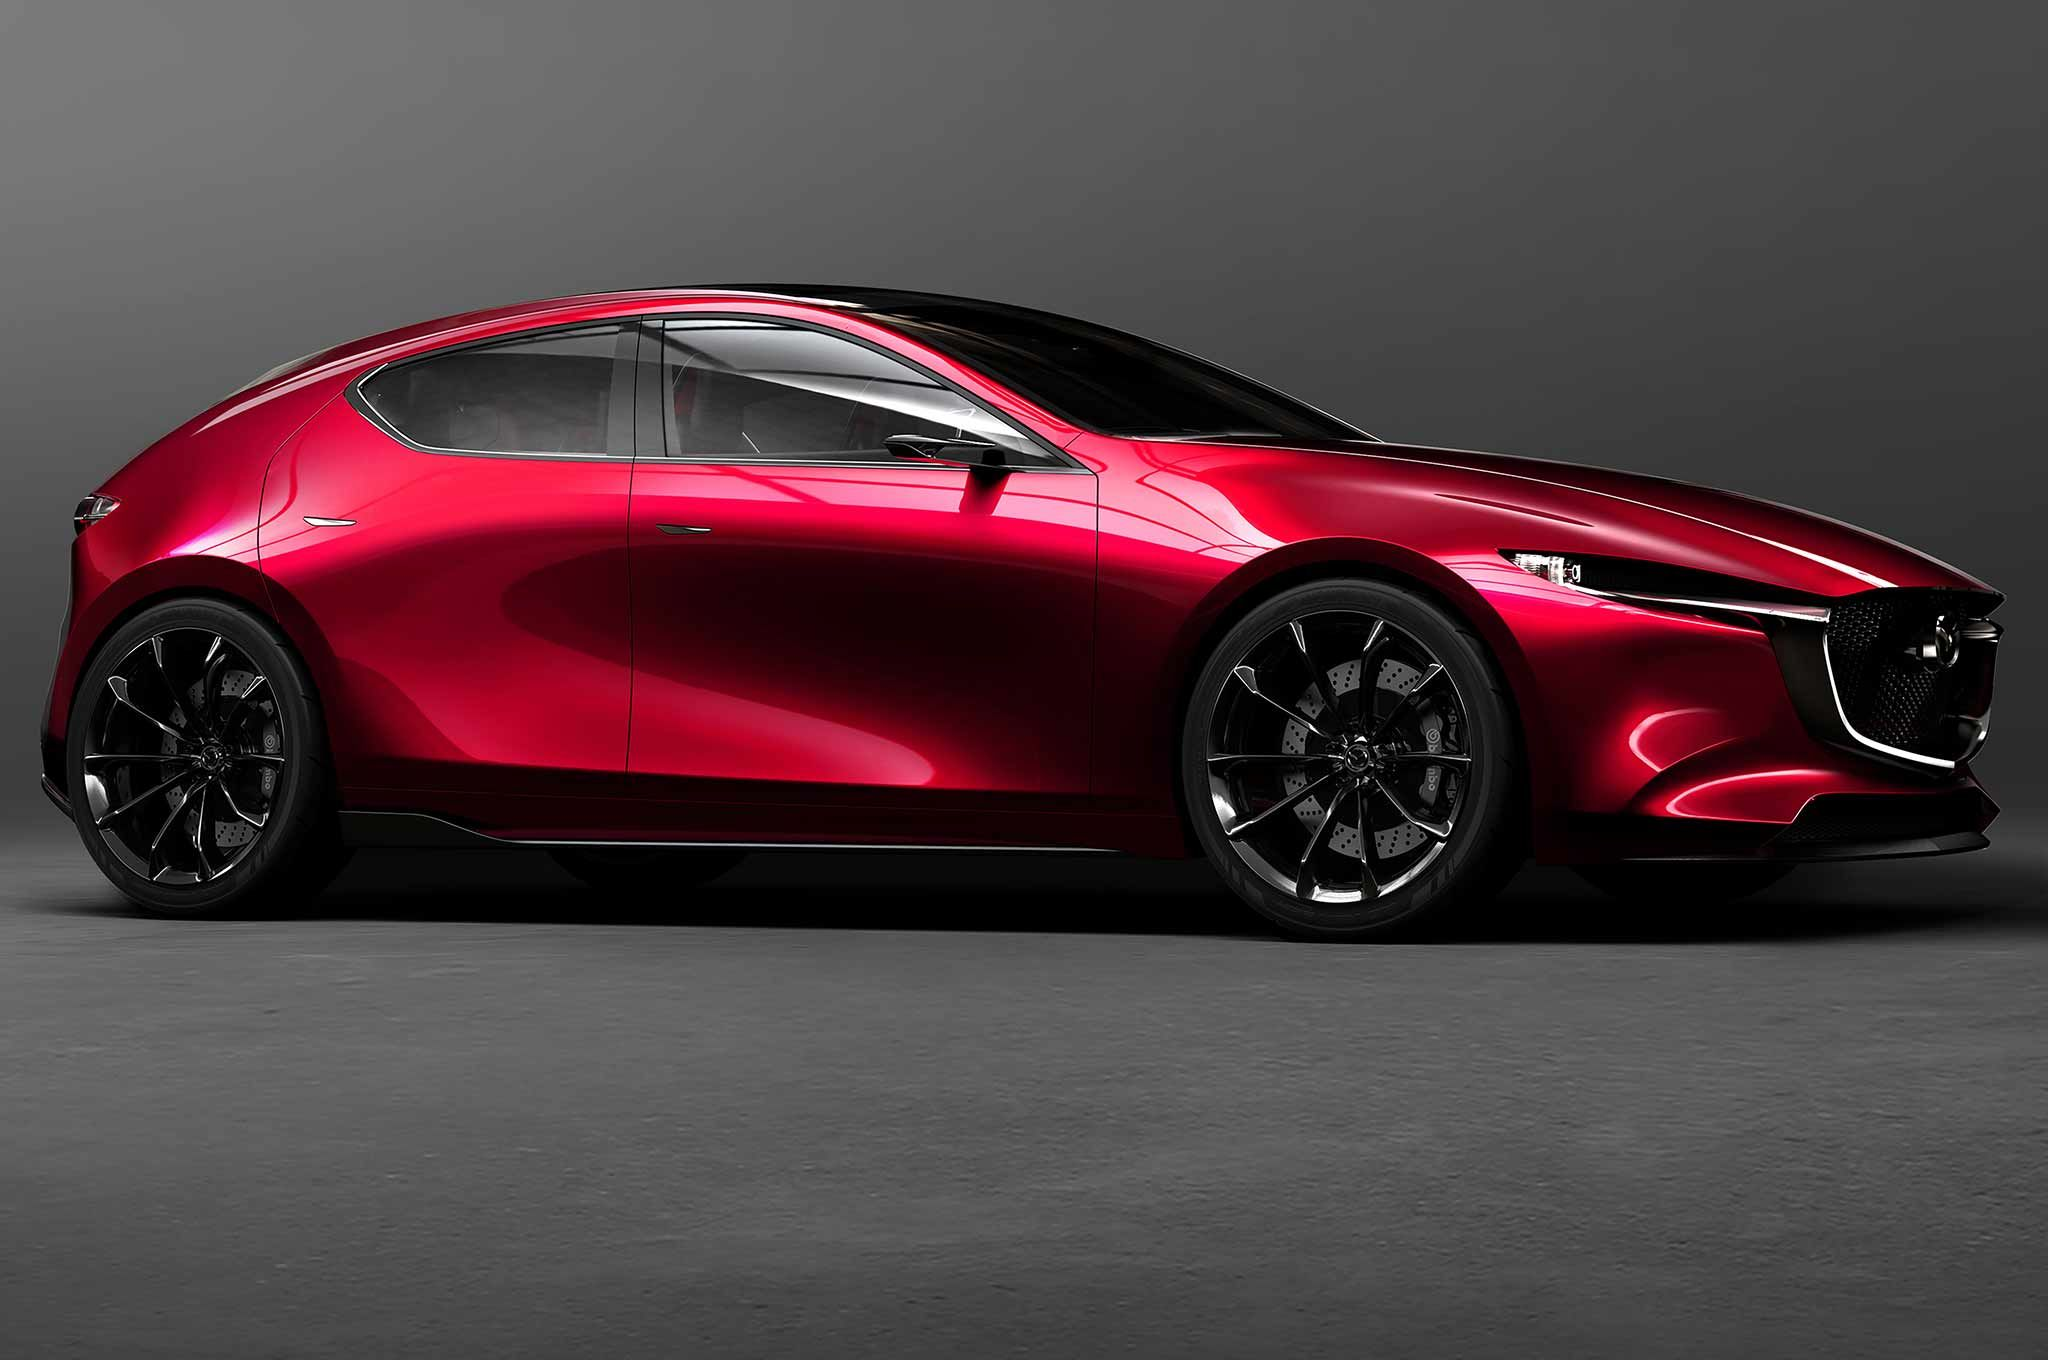 The Mazda Kai Concept Previews The Fourth Generation Mazda3 Hatchback Which Will Use The Upcoming Skyactiv X Engine Fam 4 Door Sports Cars Mazda 6 Wagon Mazda